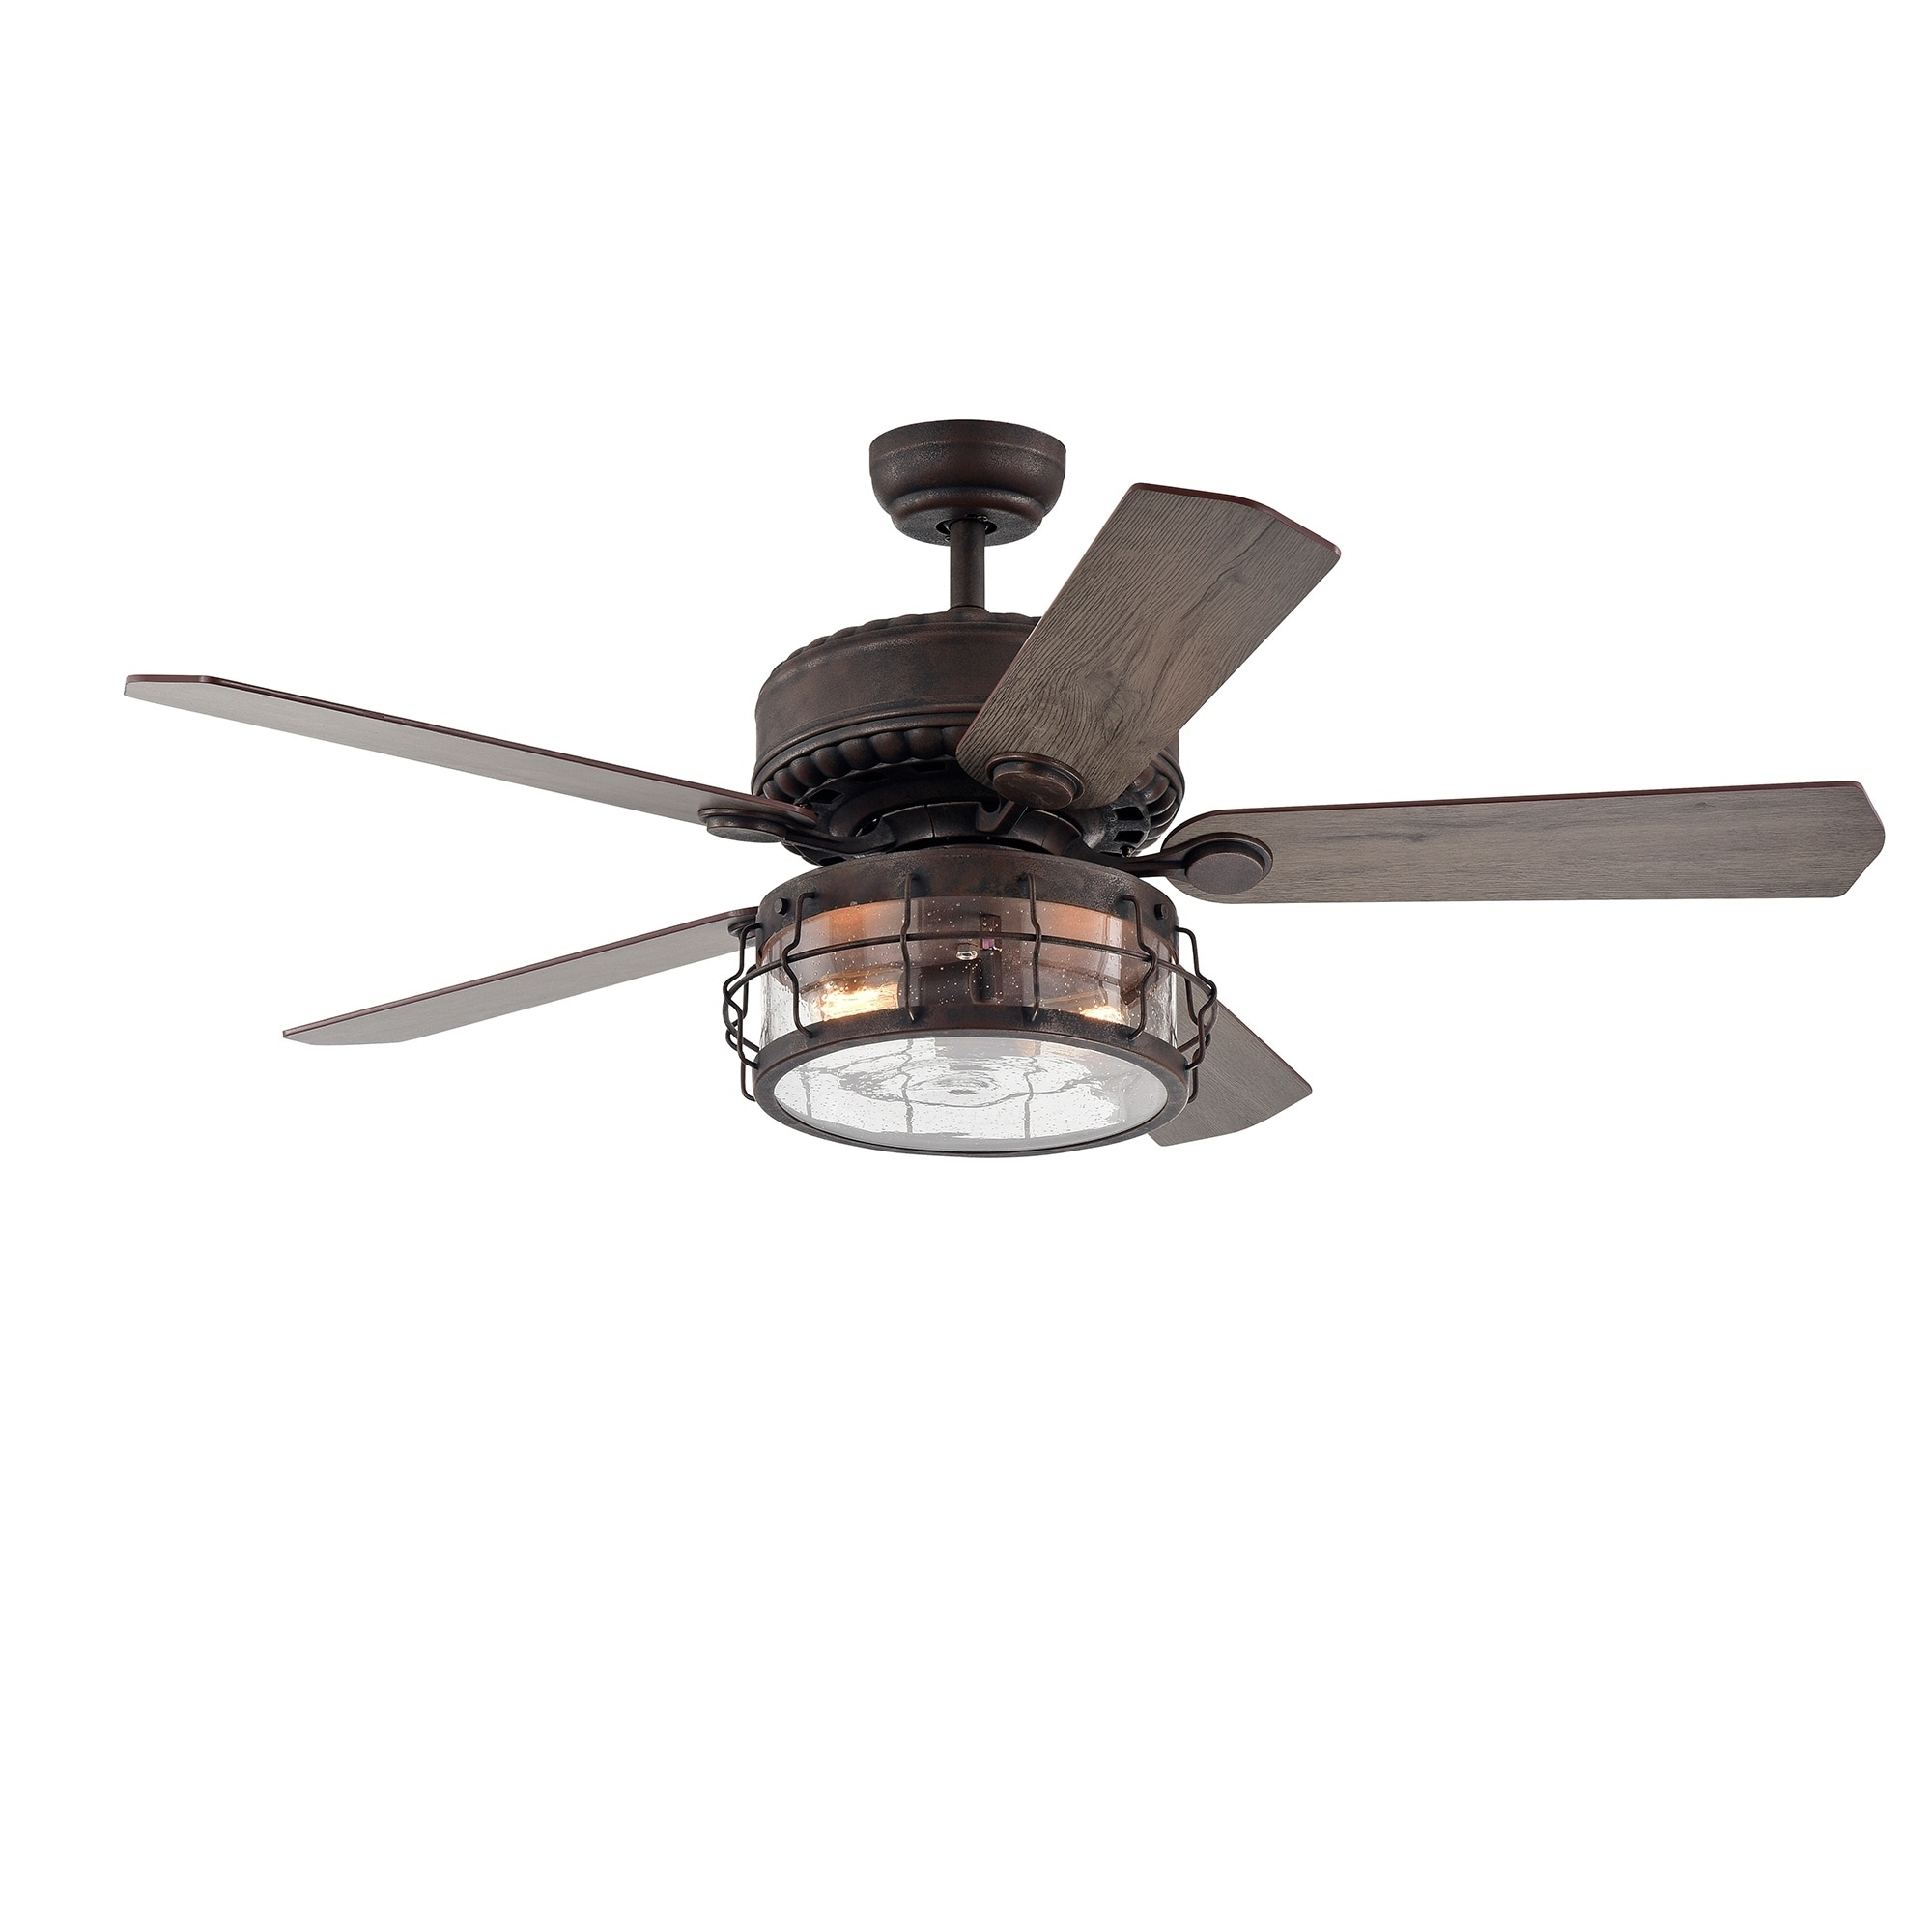 Shop Black Friday Deals On Carbon Loft Kjirsten Rustic Bronze 52 Inch 5 Blade Lighted Ceiling Fan With Caged Drum Shade Includes Remote On Sale Overstock 30501564